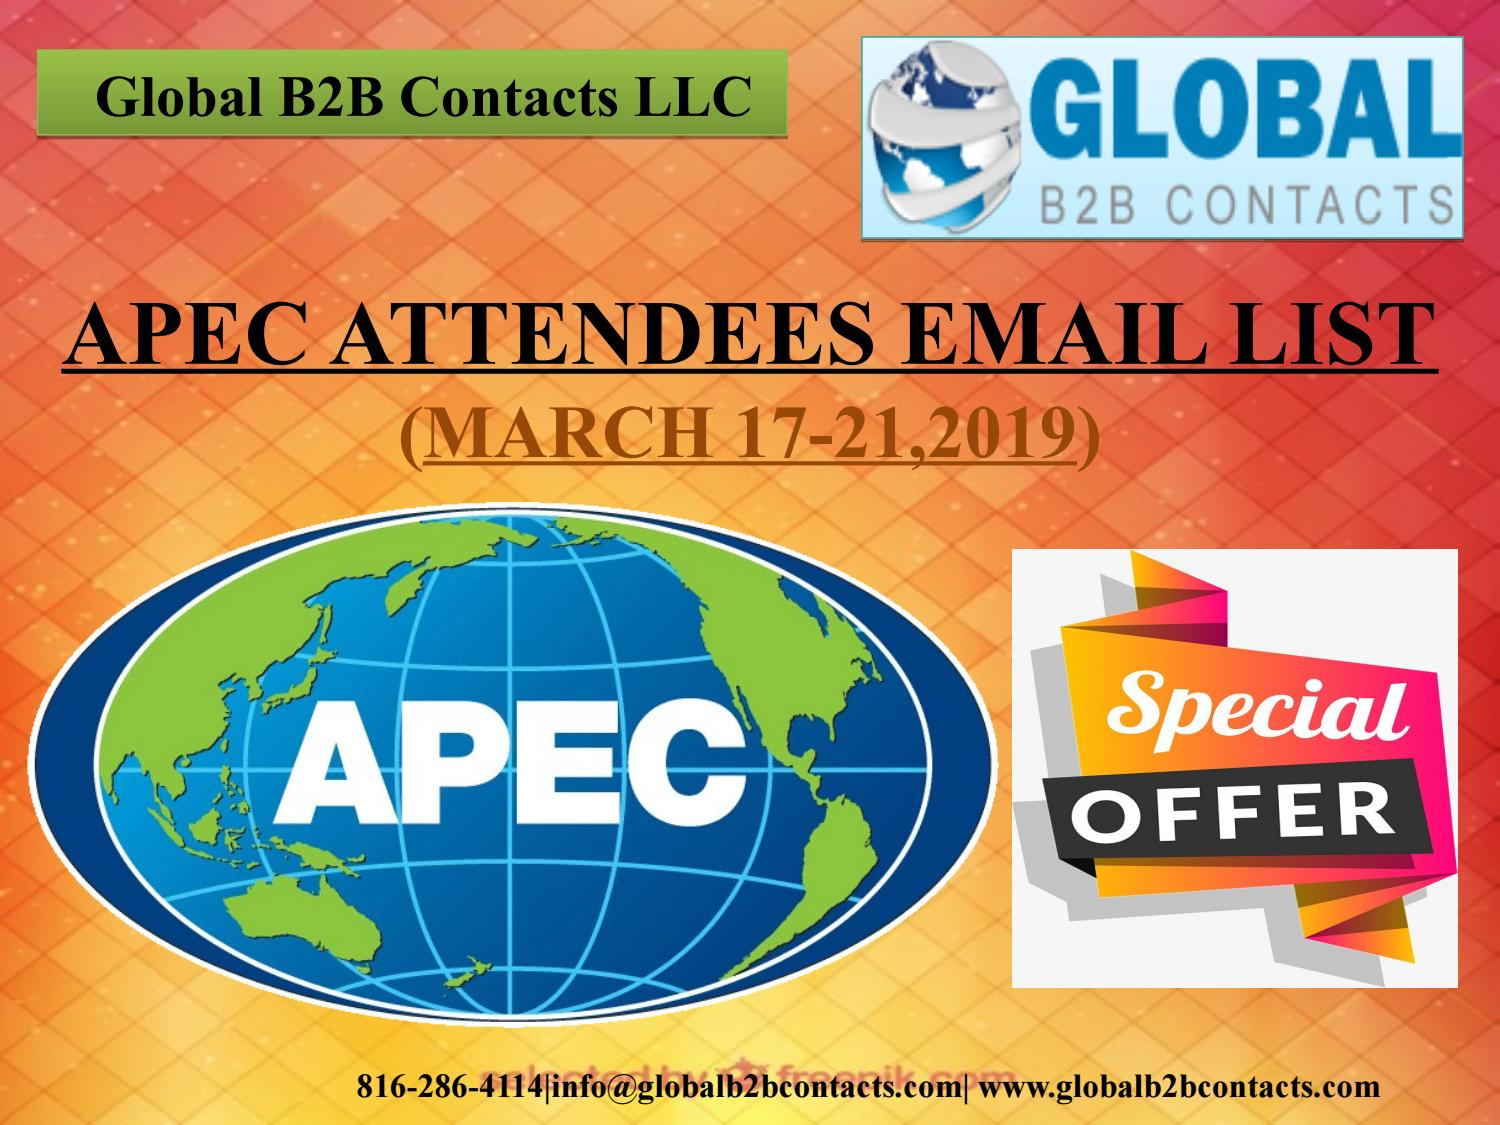 Apec Attendees Email List by Dayan Iola - issuu